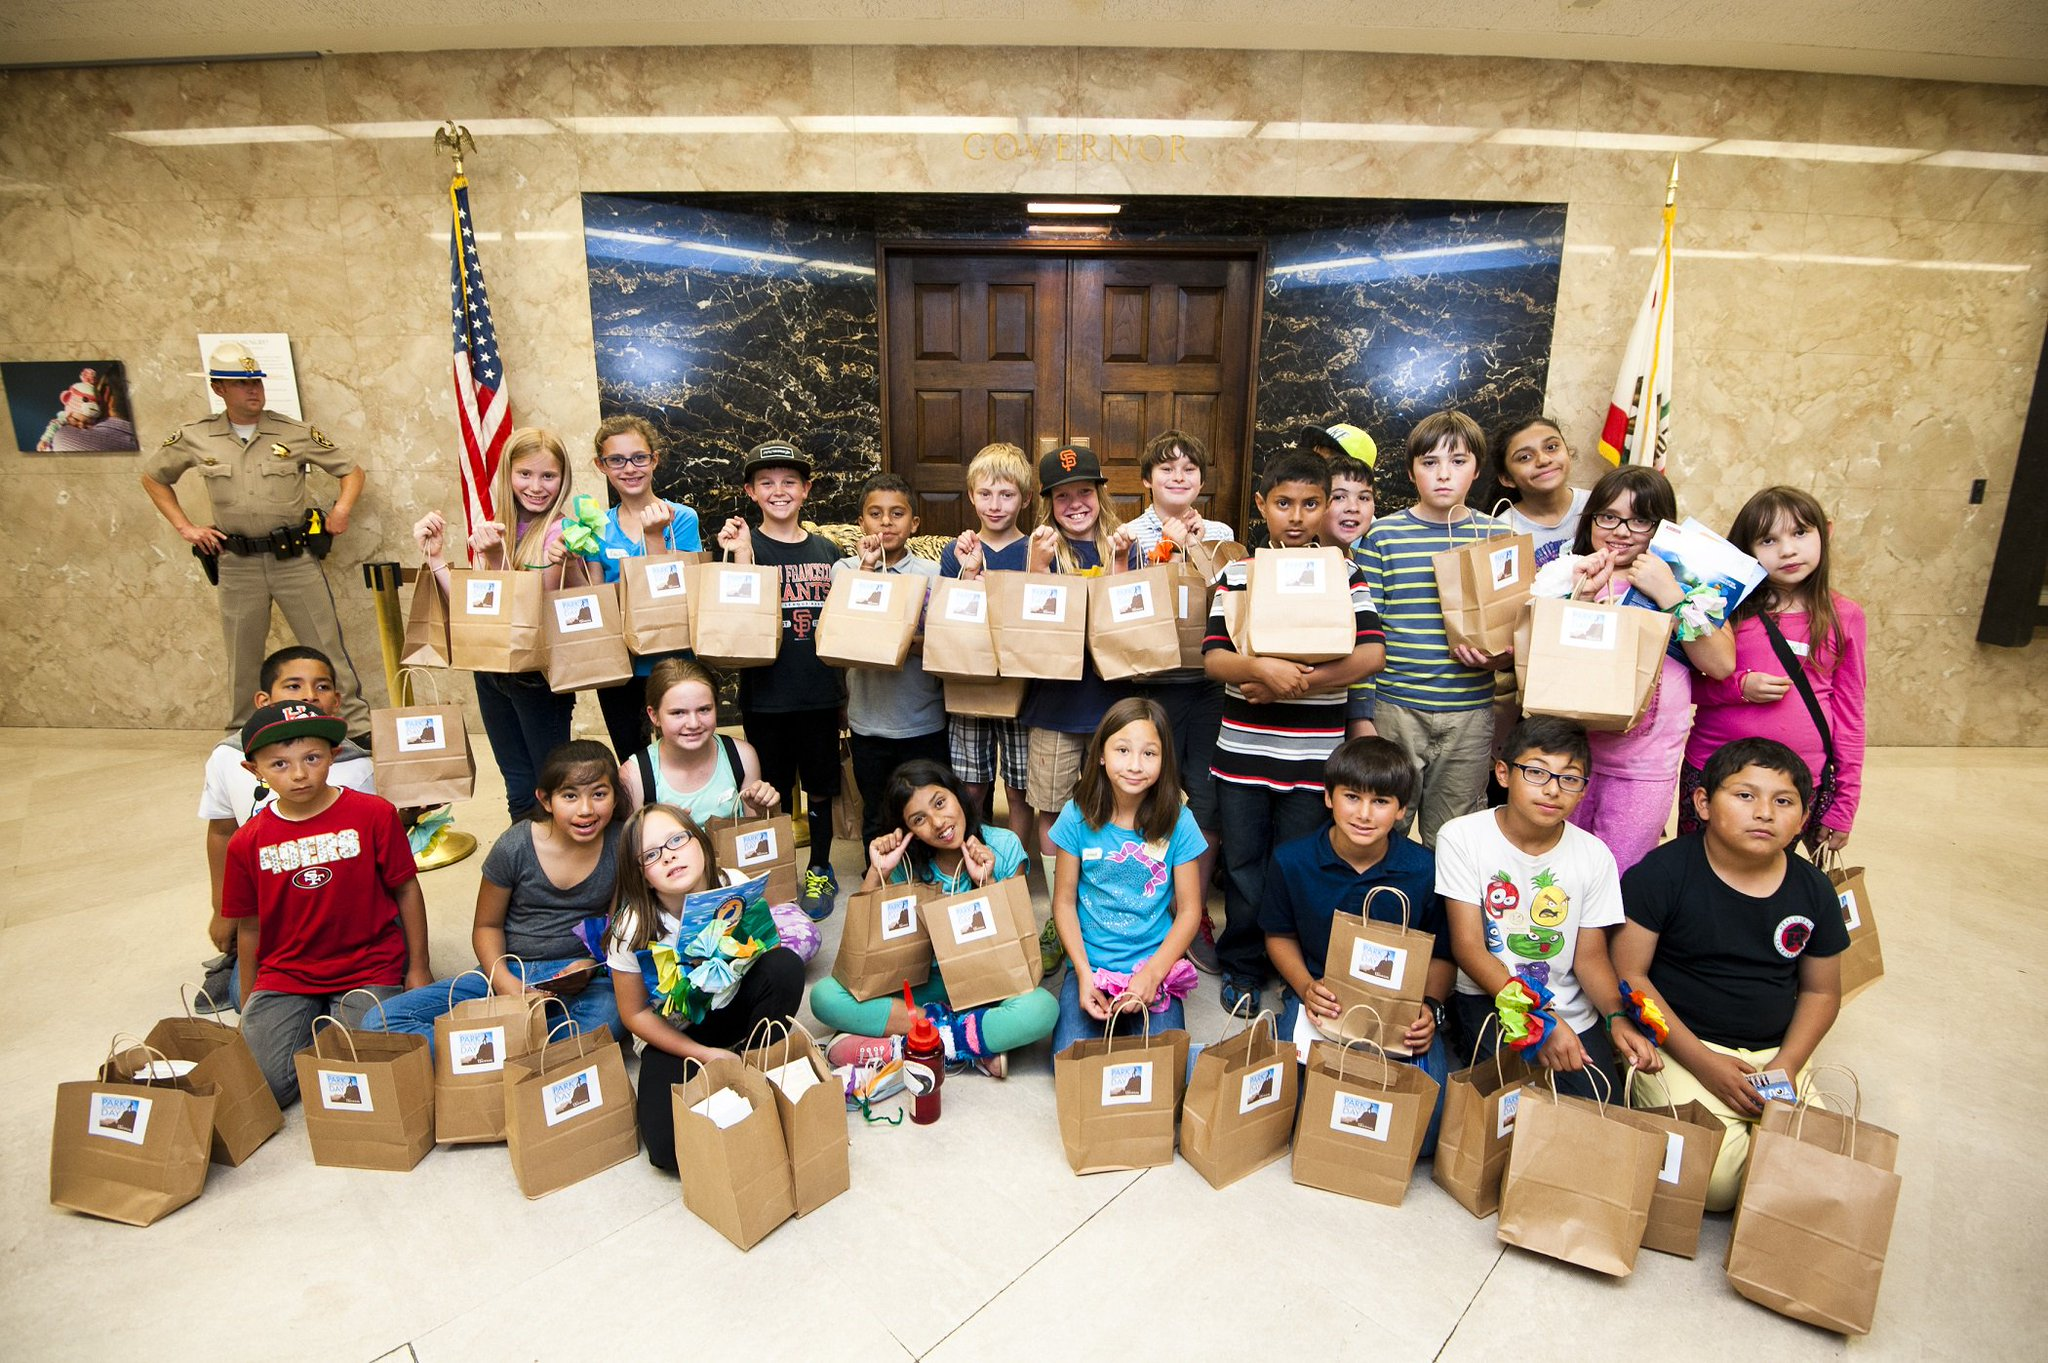 4th graders delivering petitions to @JerryBrownGov for #ParkAdvocacyDay 2015. Sign this year's petition online! #fbf https://t.co/qzyju0b9zo https://t.co/8zPcKNzJ2e